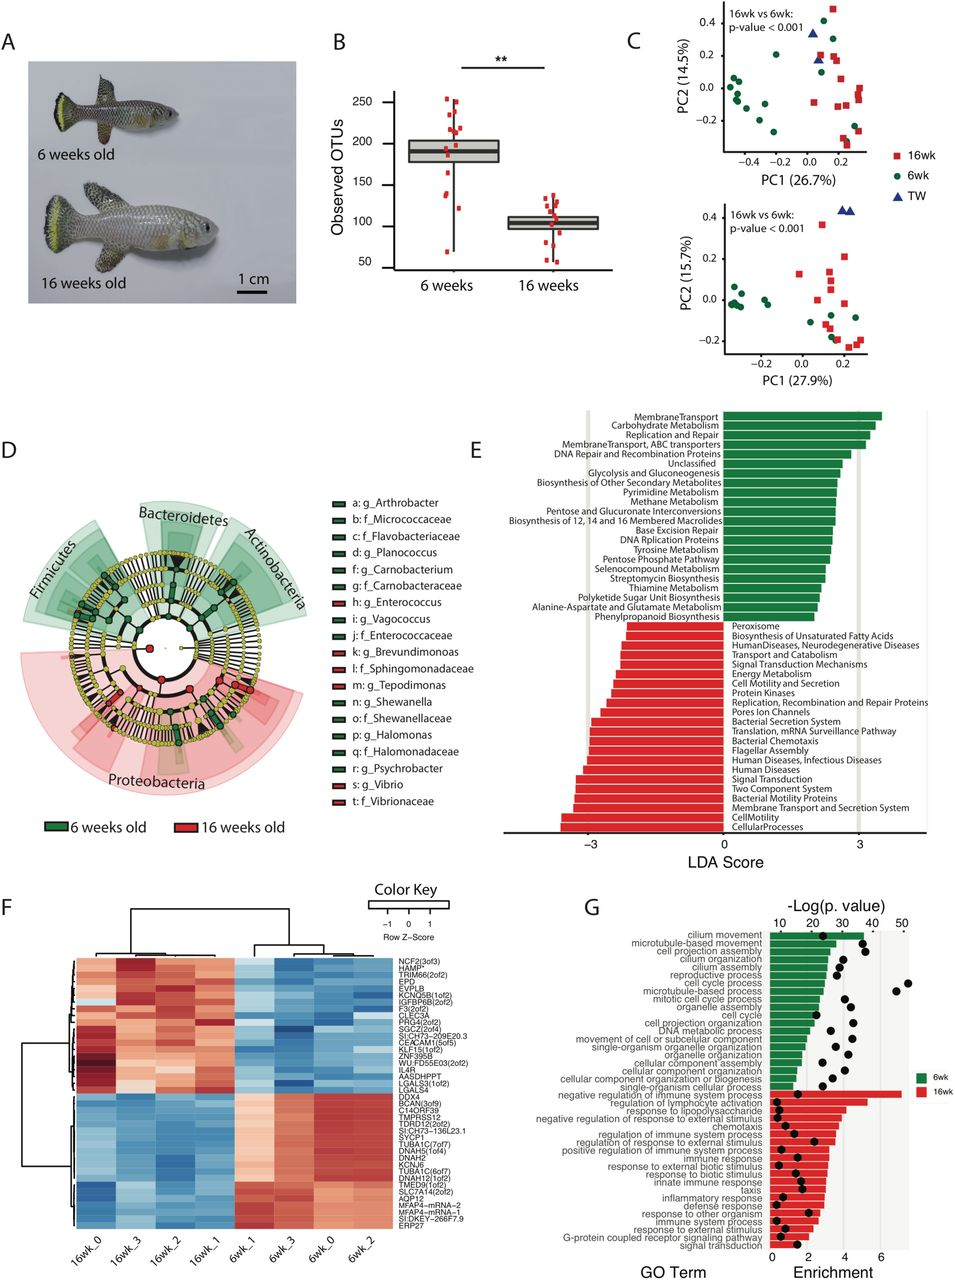 Regulation of Life Span by the Gut Microbiota in The Short